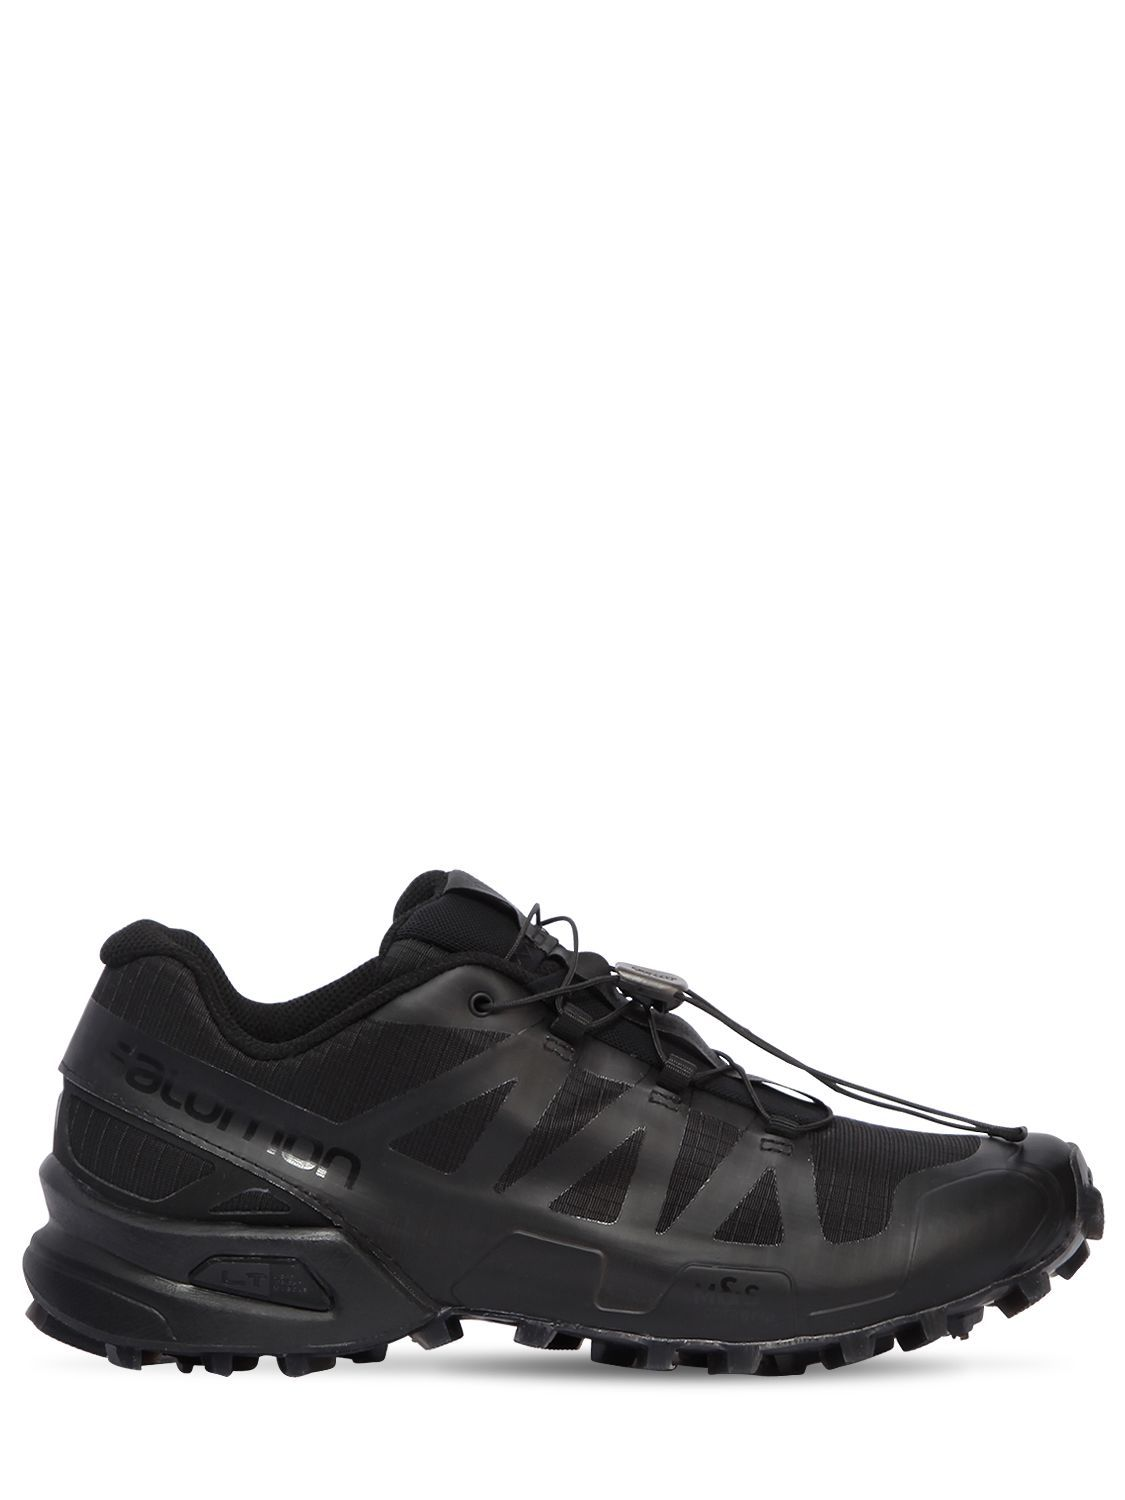 11 BY BORIS BIDJAN SABERI SALOMON BY 11 TECH NYLON SNEAKERS